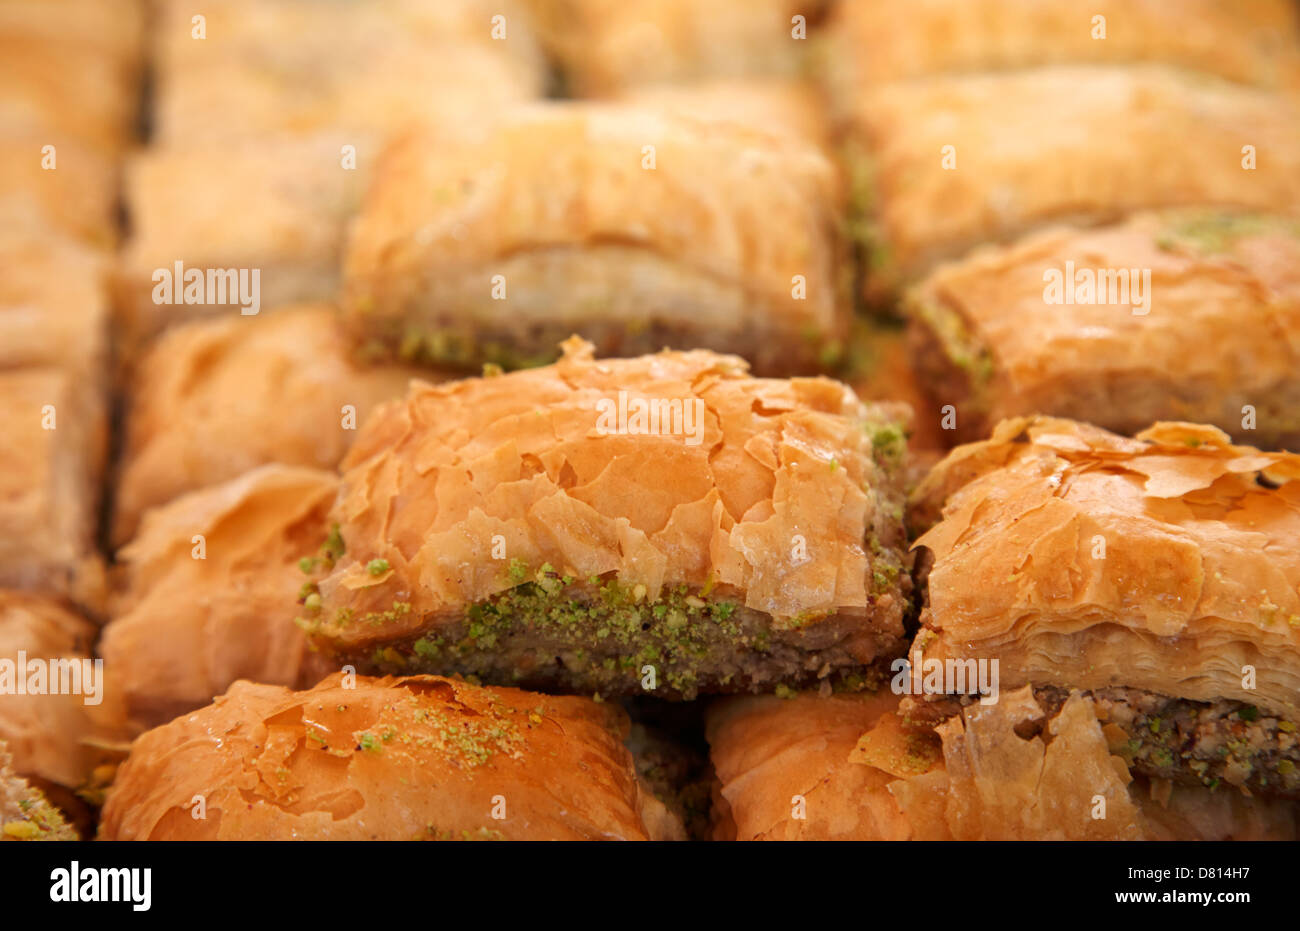 baklava pastries on a tray - Stock Image